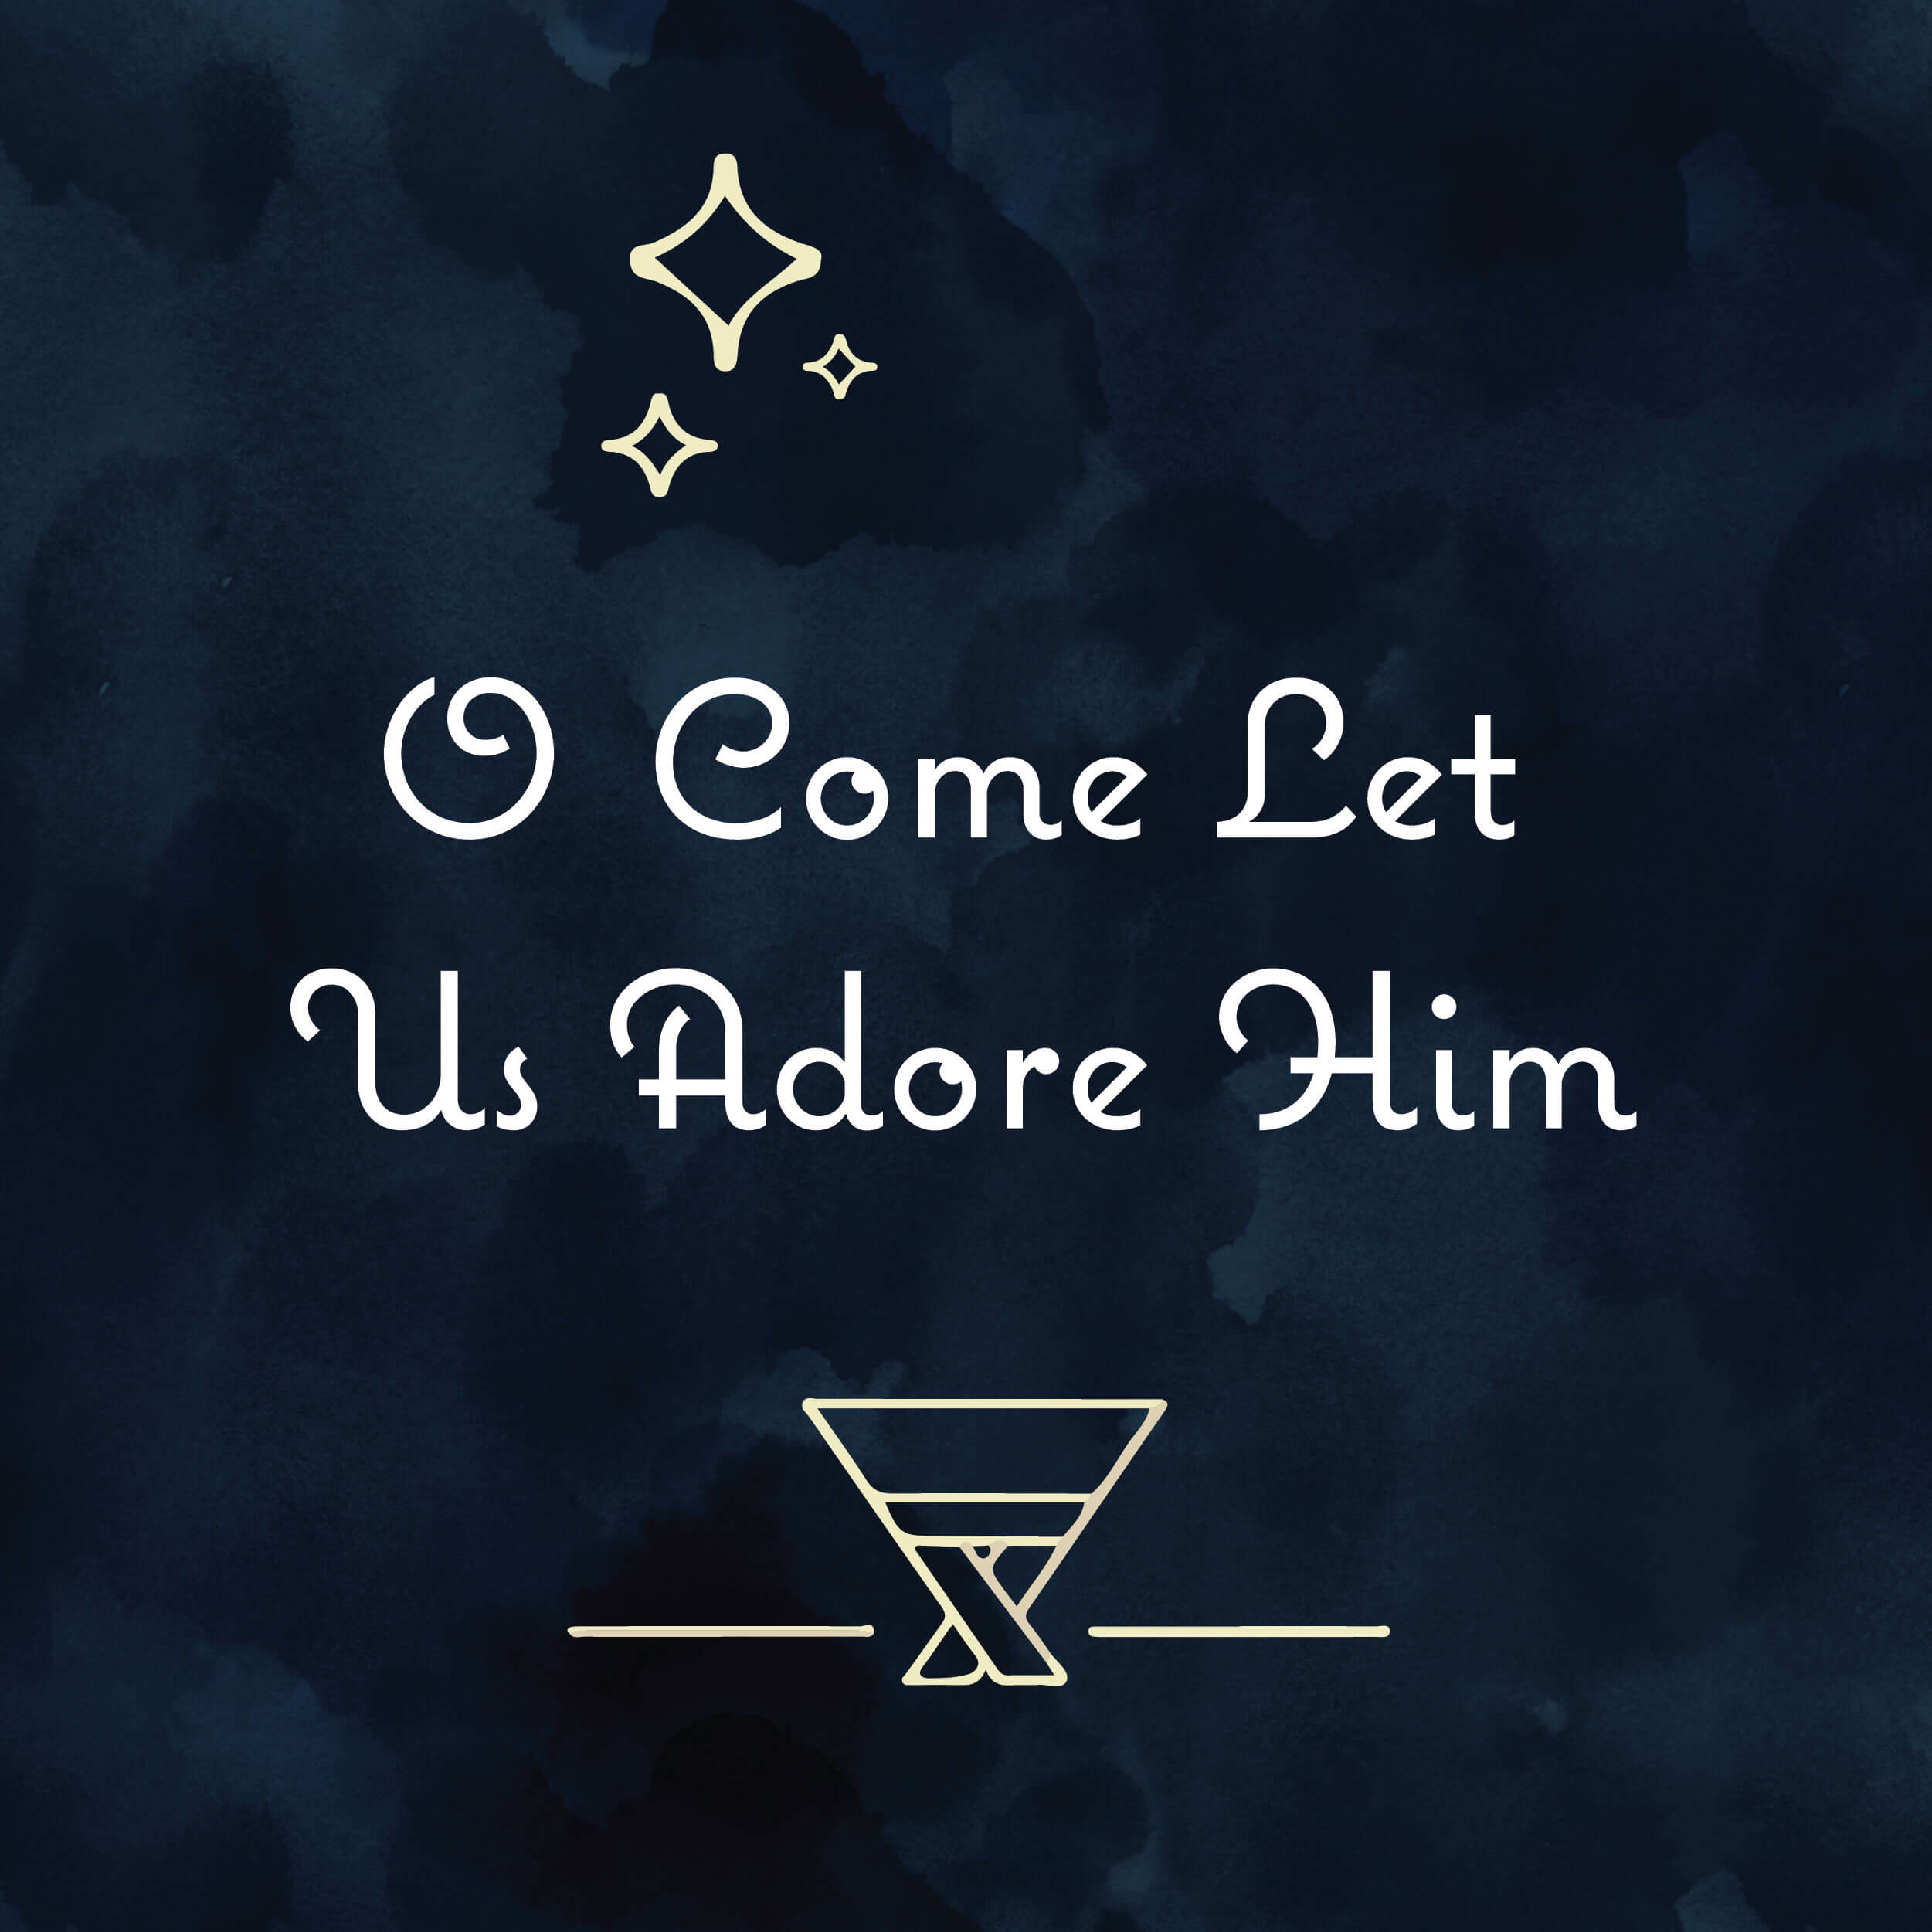 O Come Let Us Adore Him:  Welcoming 2019